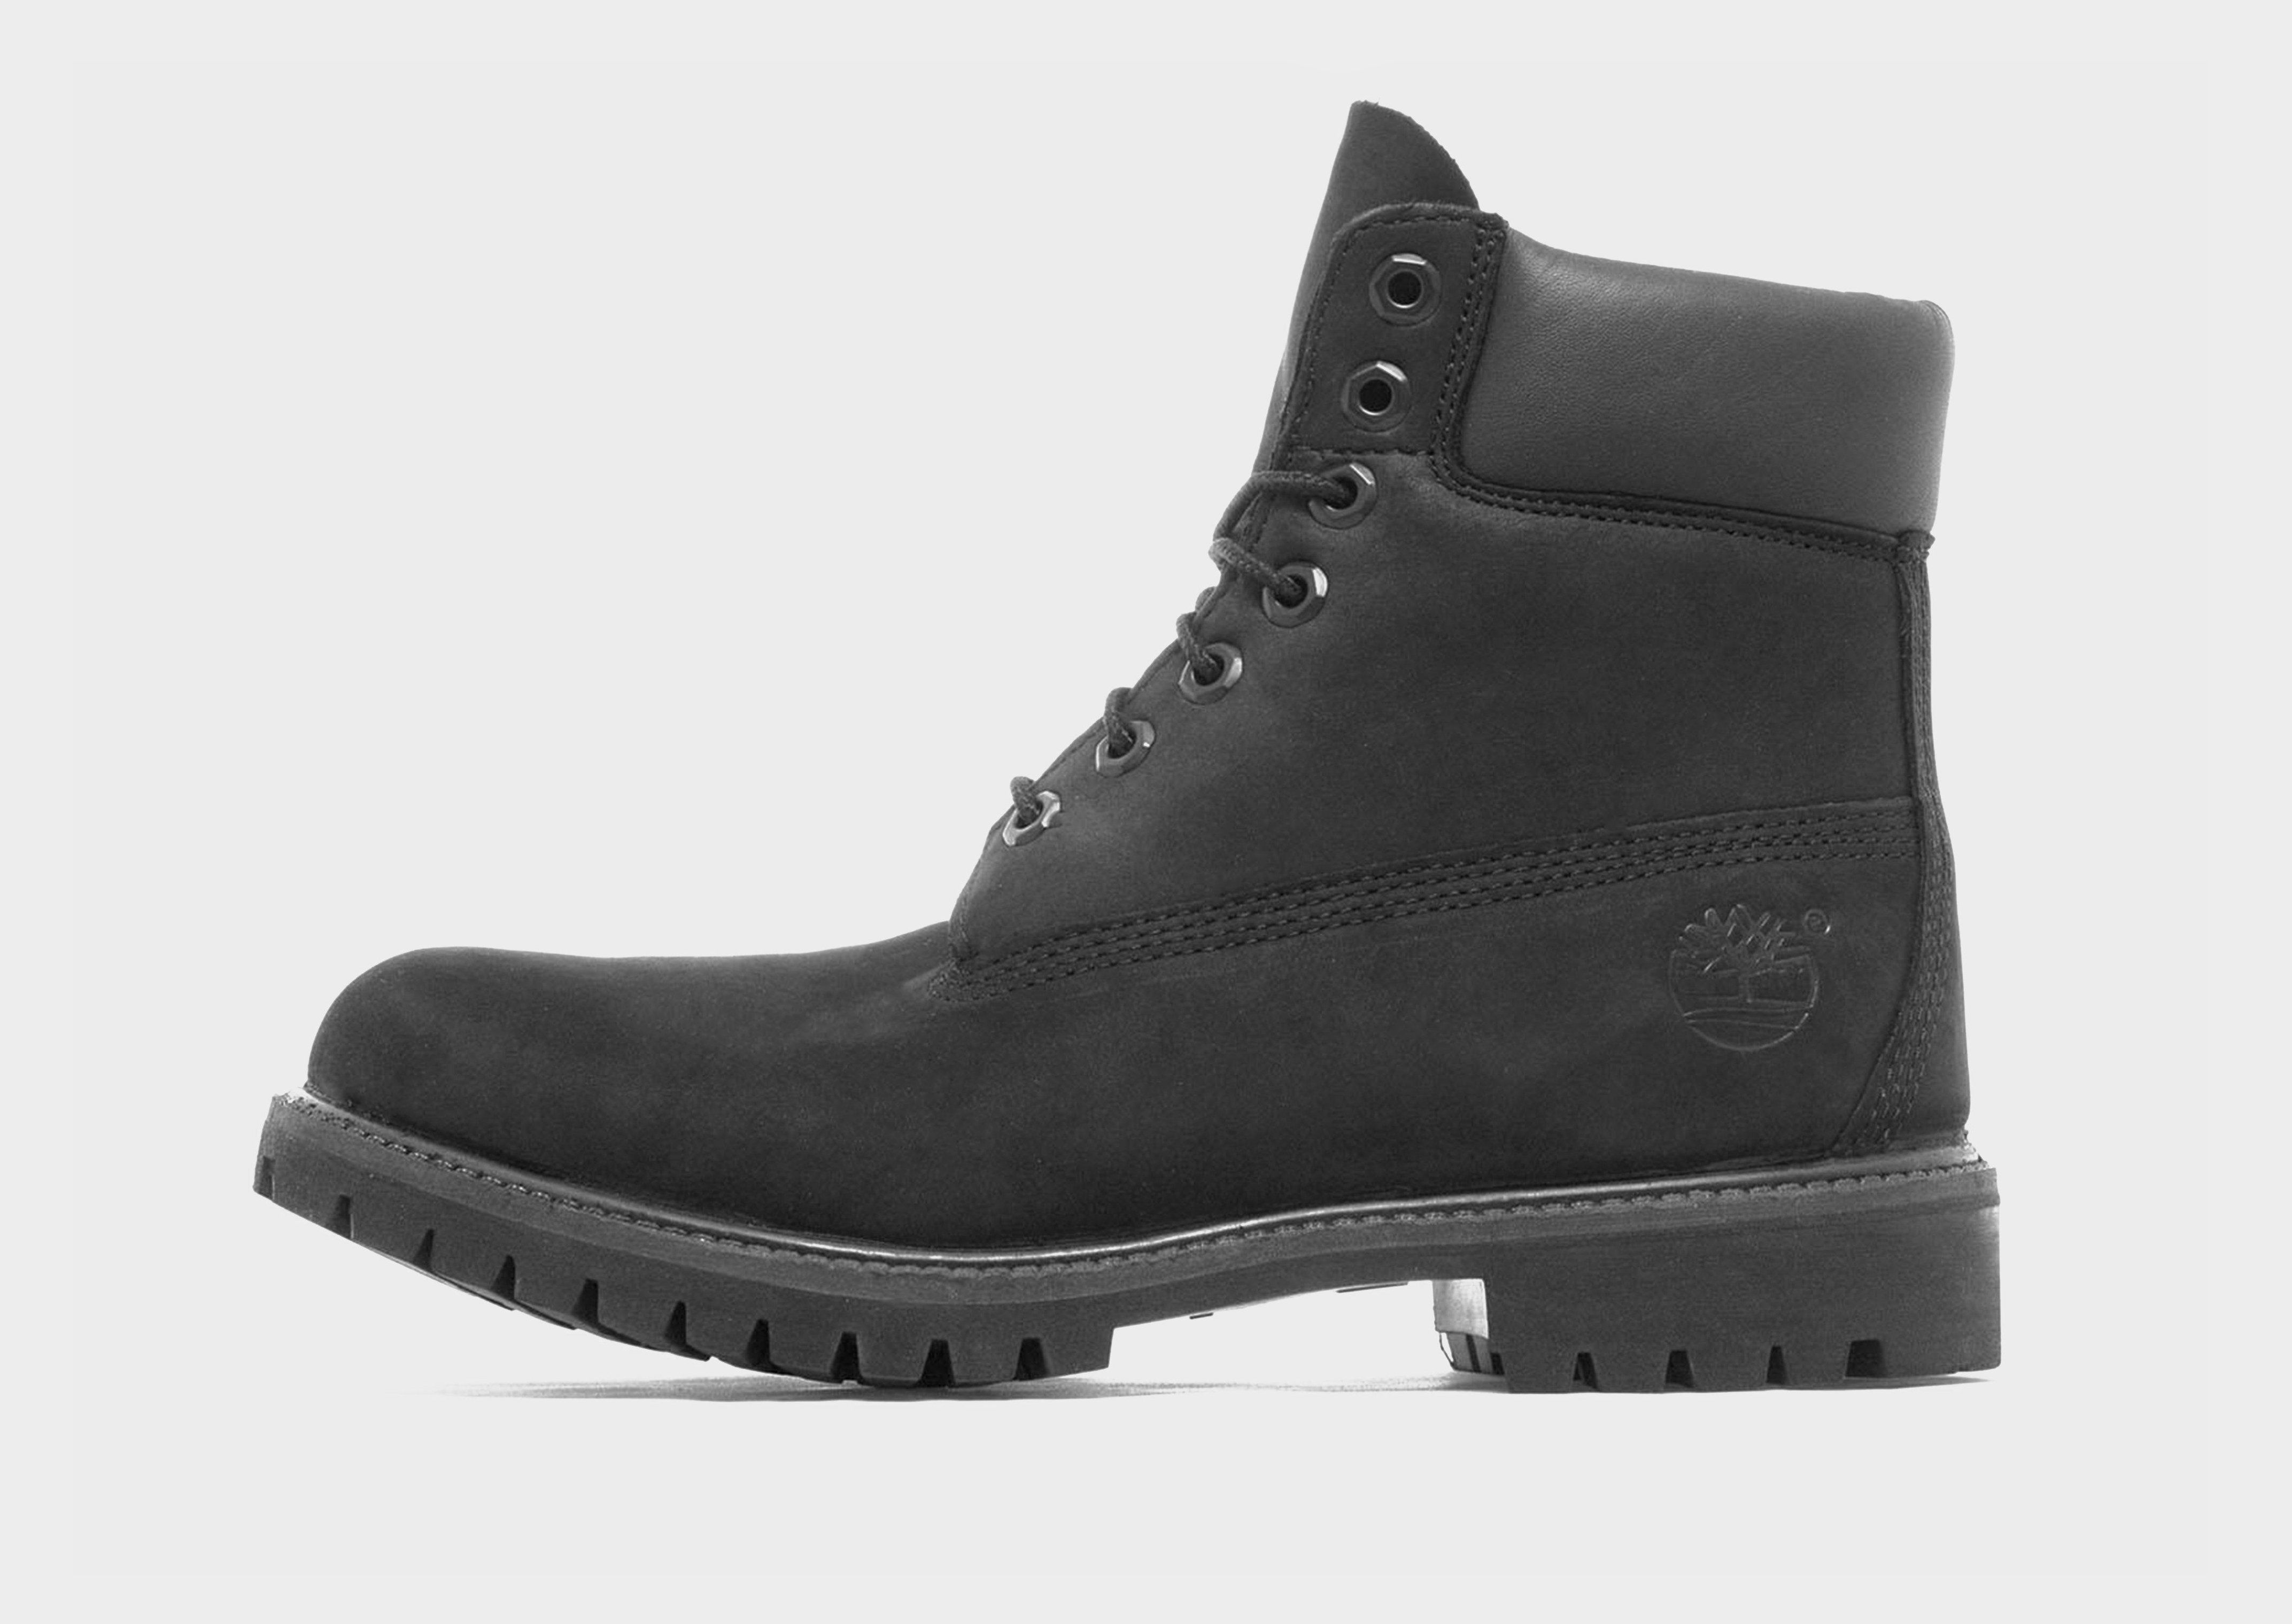 5cdc11e9deffc Timberland 6 Inch Premium Boot | JD Sports